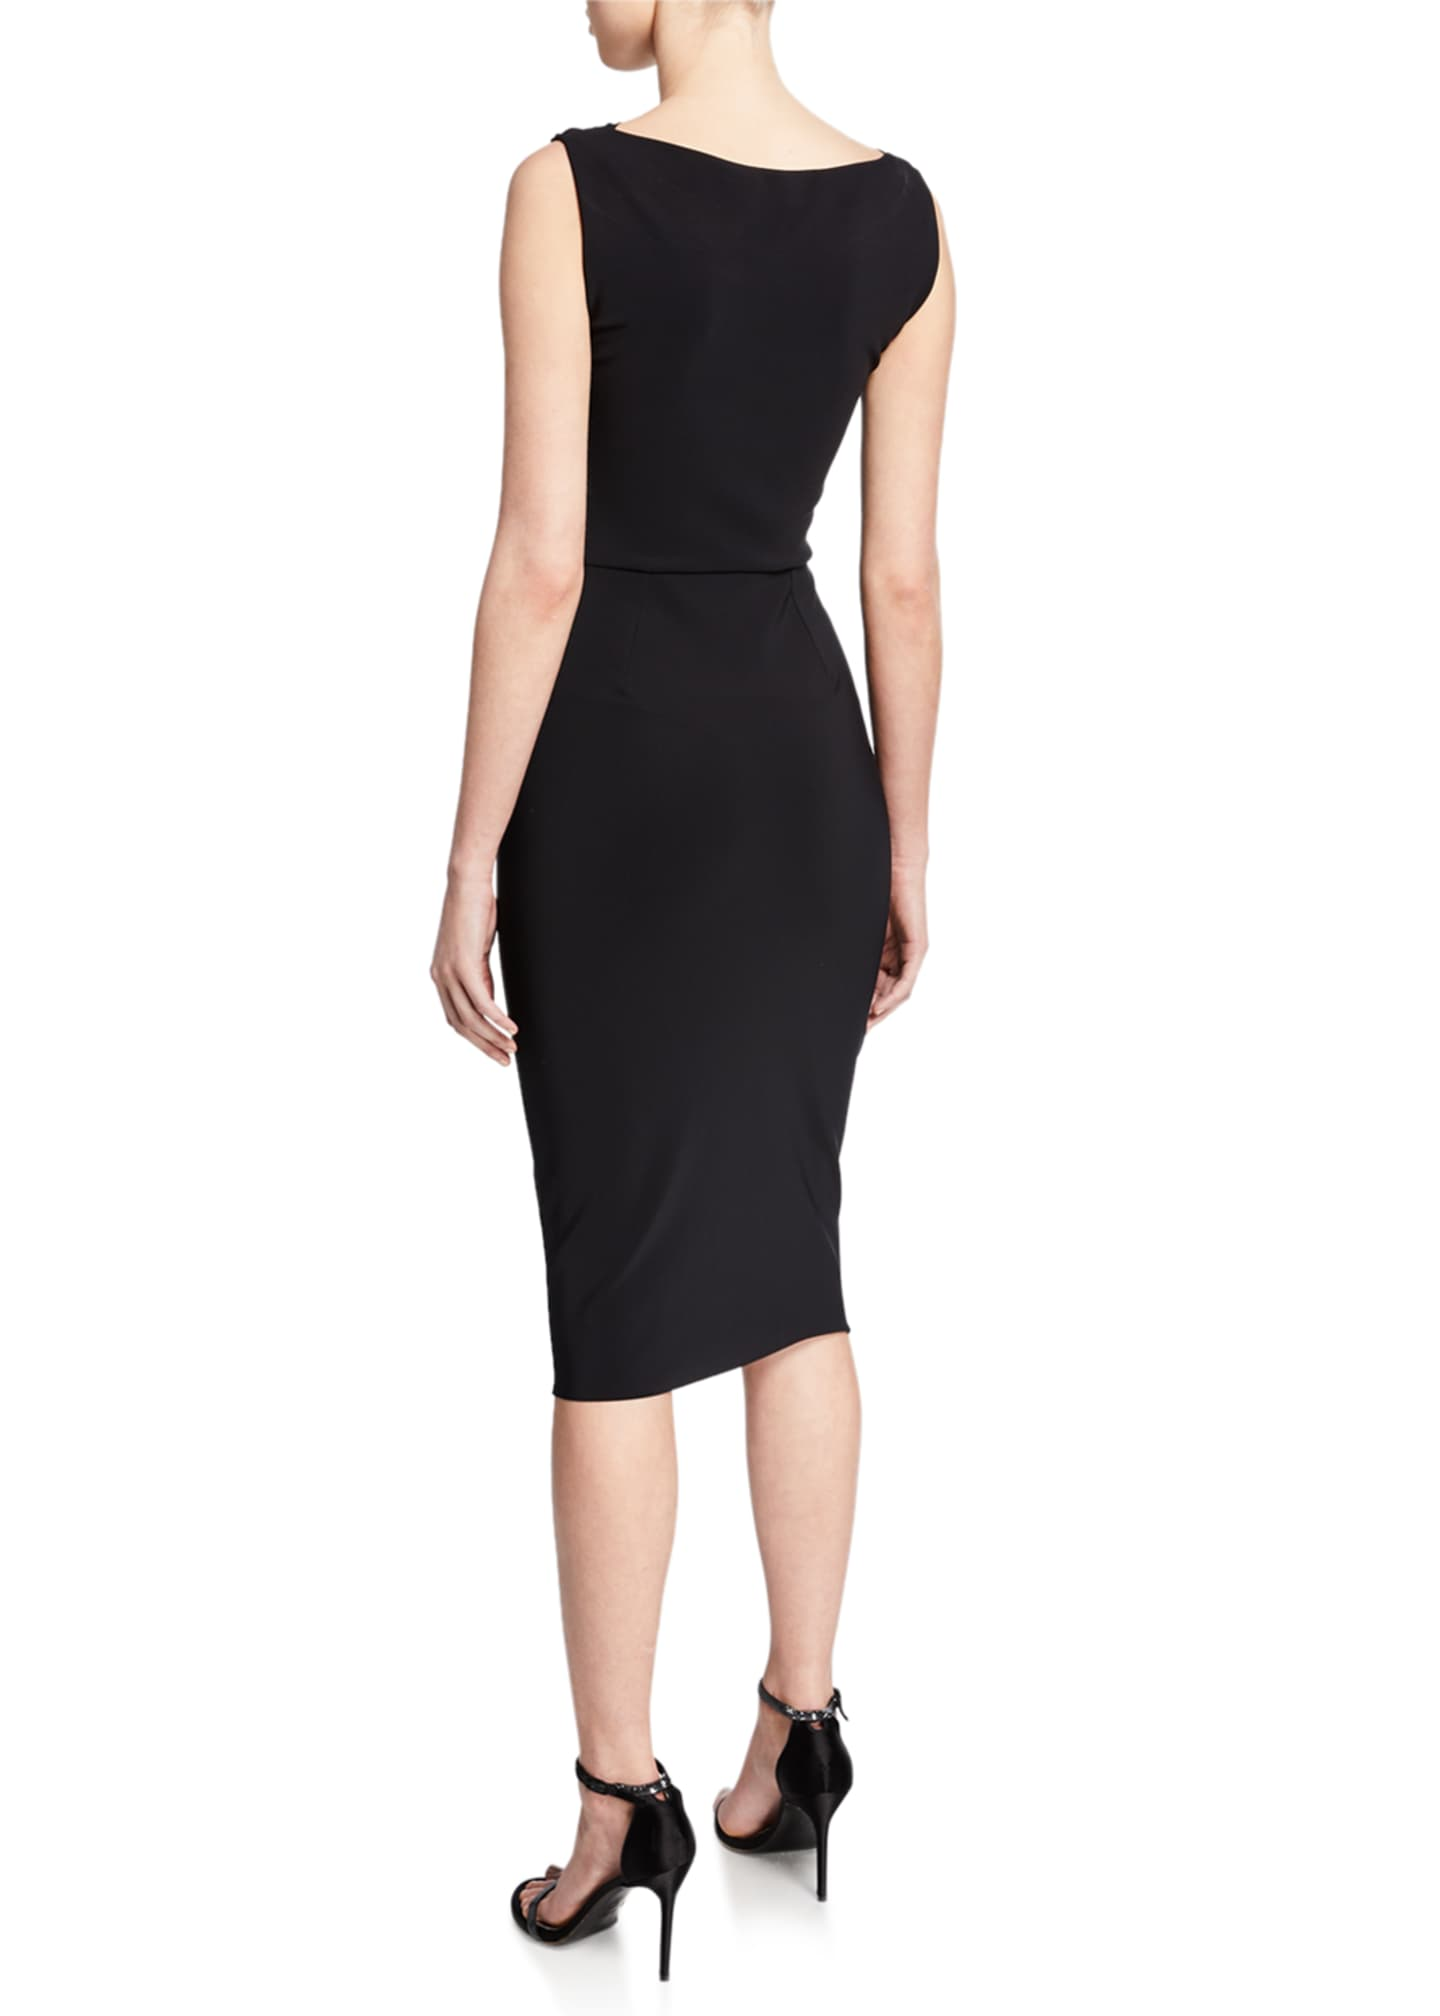 Image 2 of 2: Audrine Sleeveless Keyhole Dress with Ruched Bodice